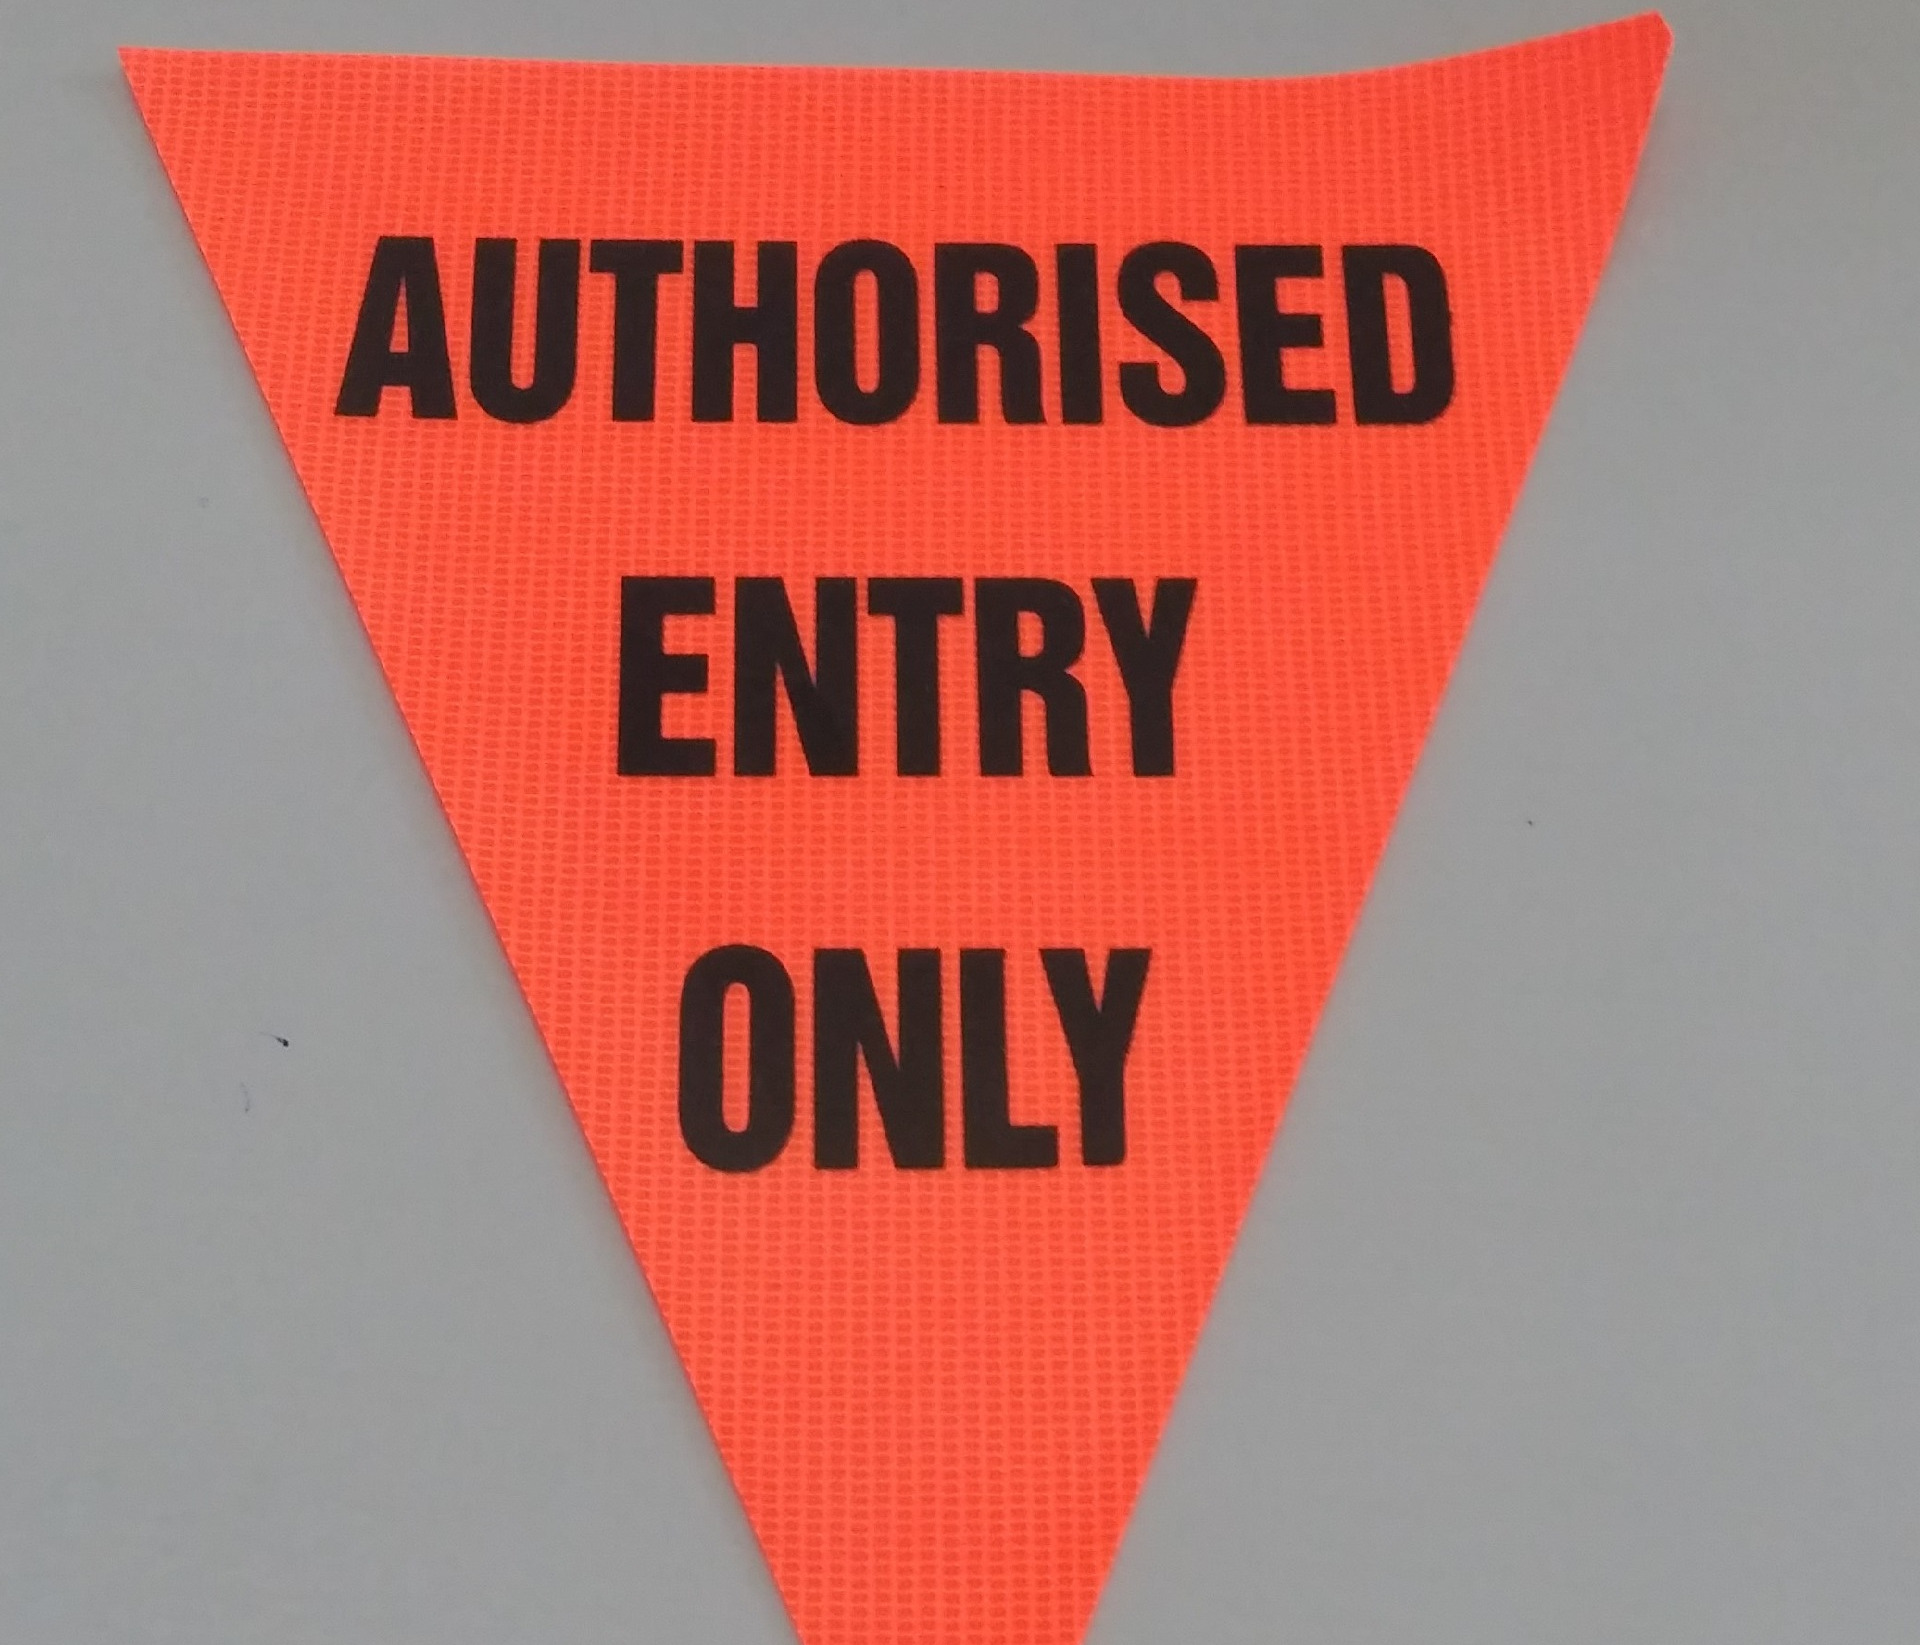 Authorised Entry Only (orange)